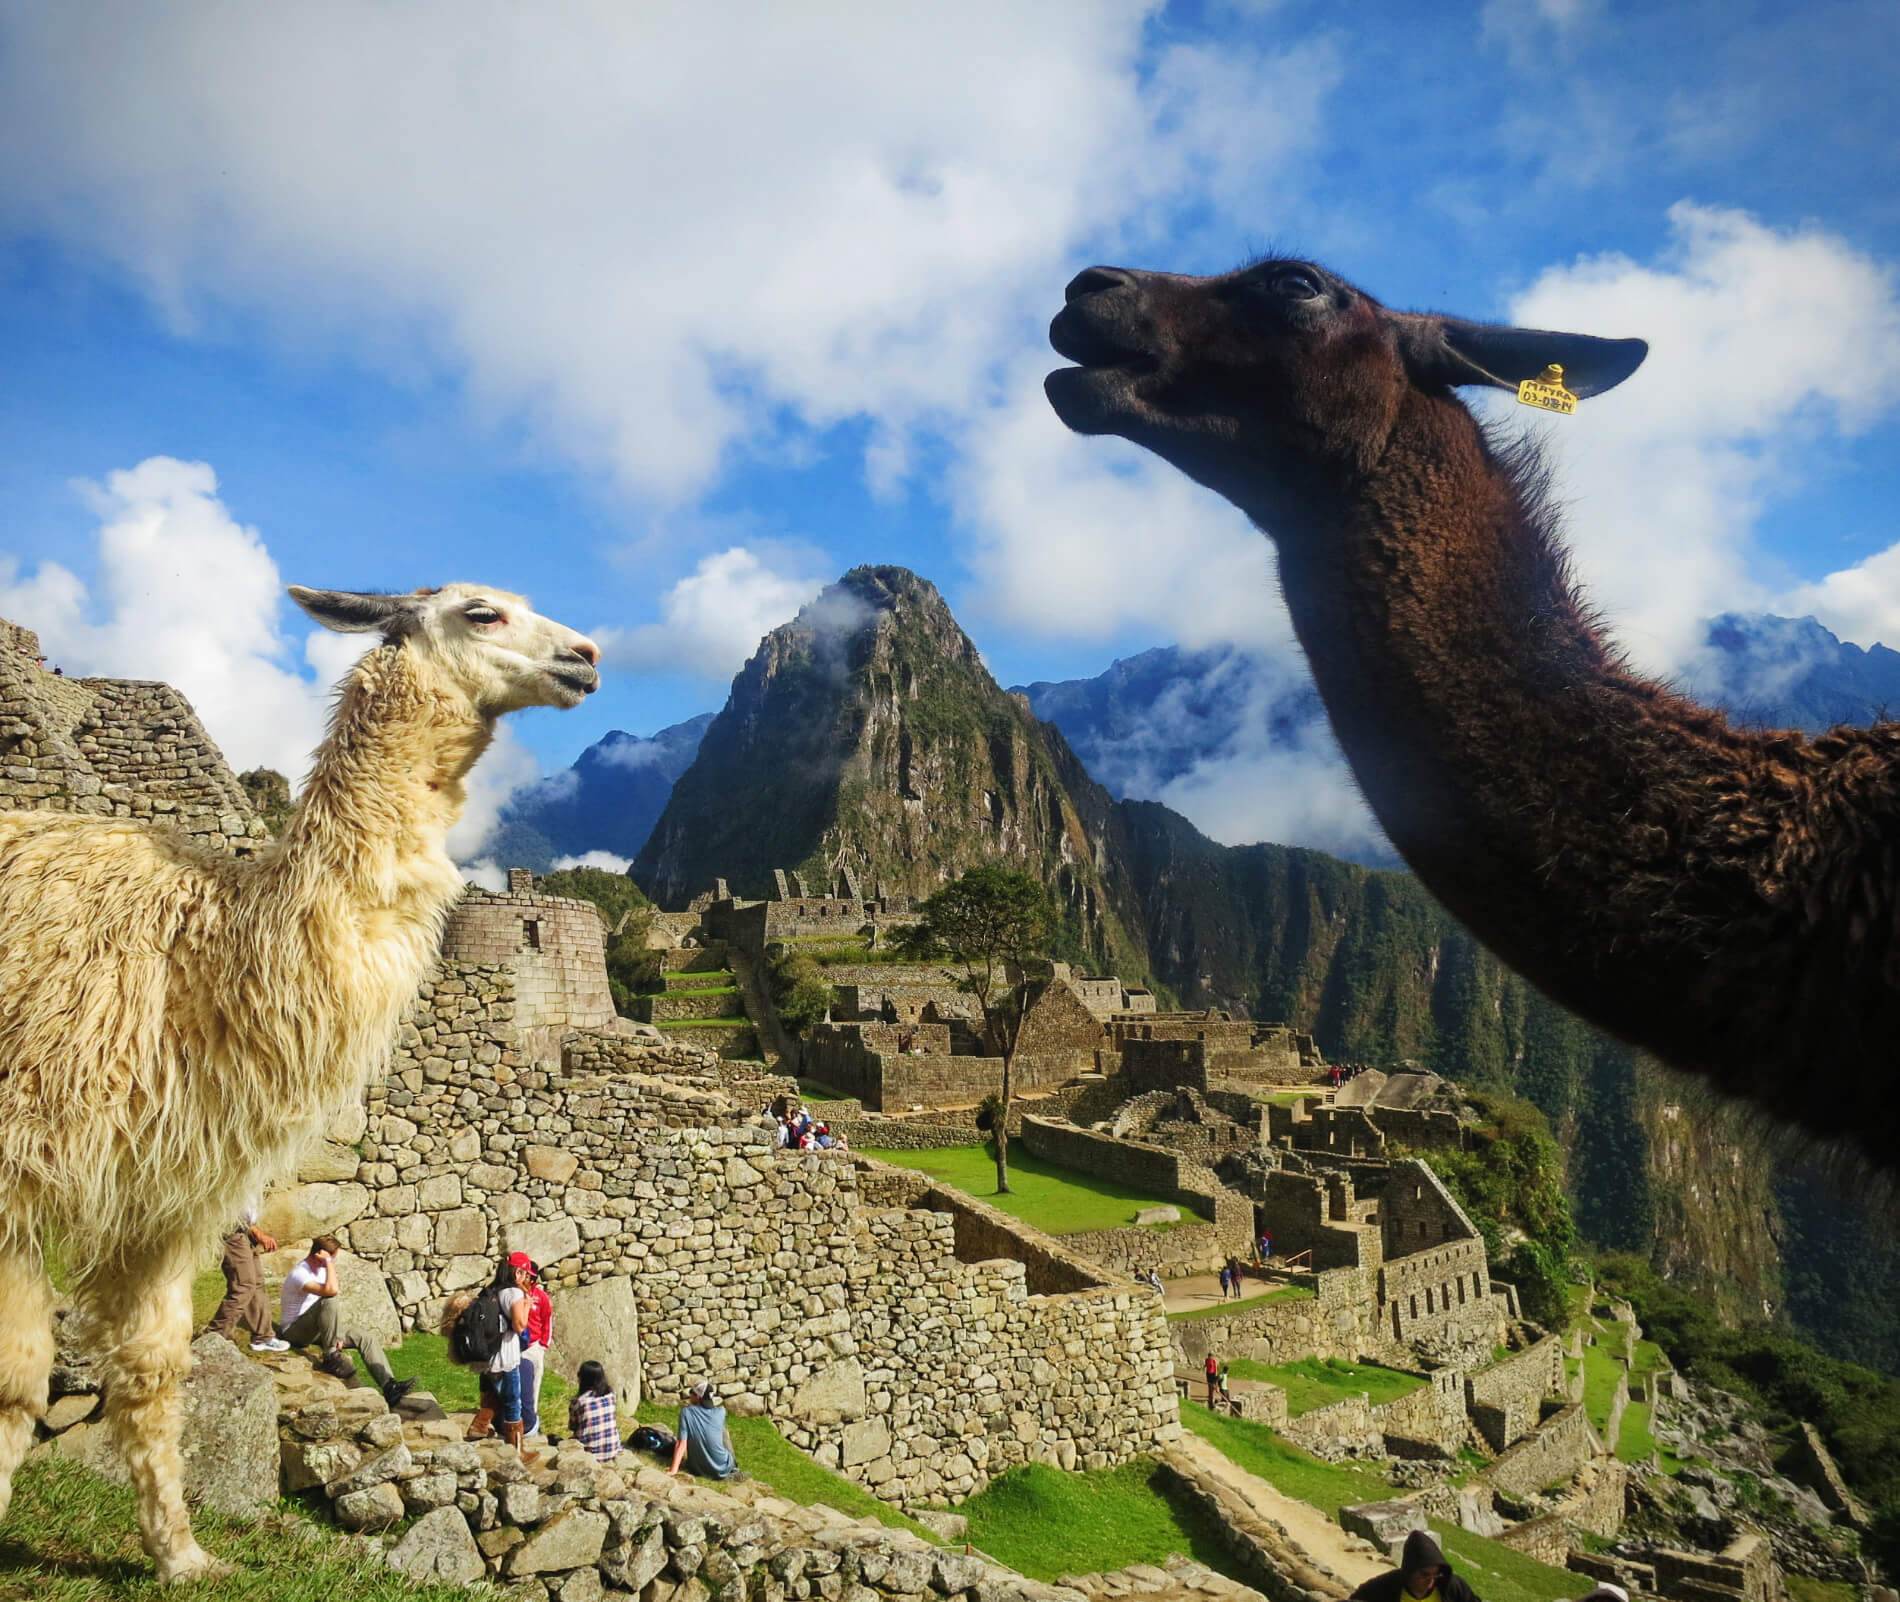 Llamas in Machu Picchu, Peru, after our failure on the Inca Trail to Machu Picchu.